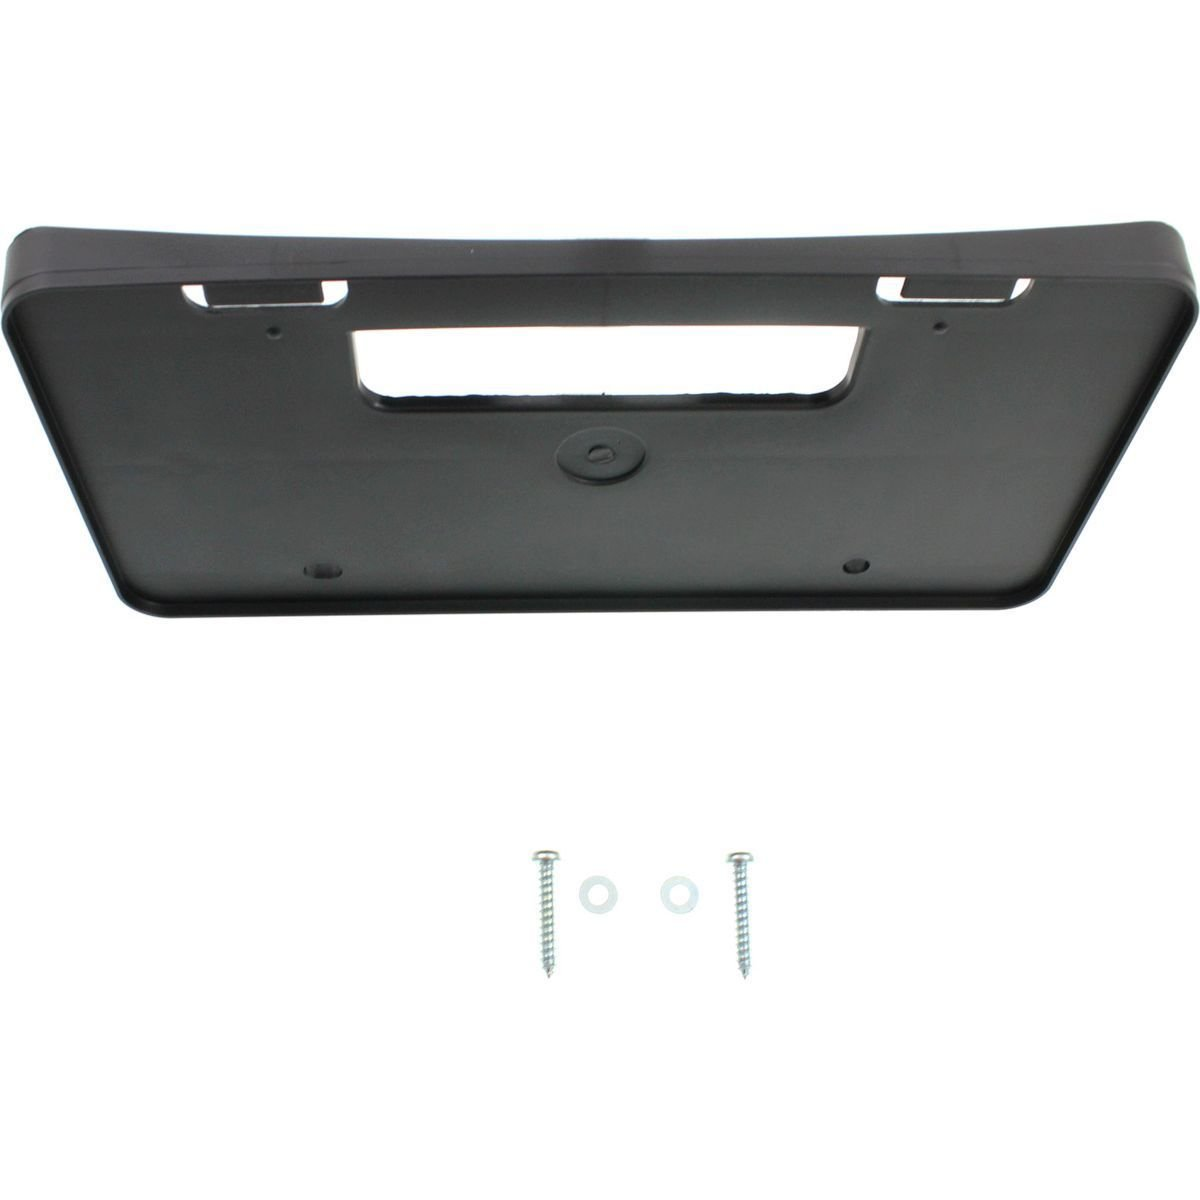 DAT 14-16 TOYOTA COROLLA FRONT LICENSE PLATE BRACKET S//SE Model TO1068123 DAT AUTO PARTS